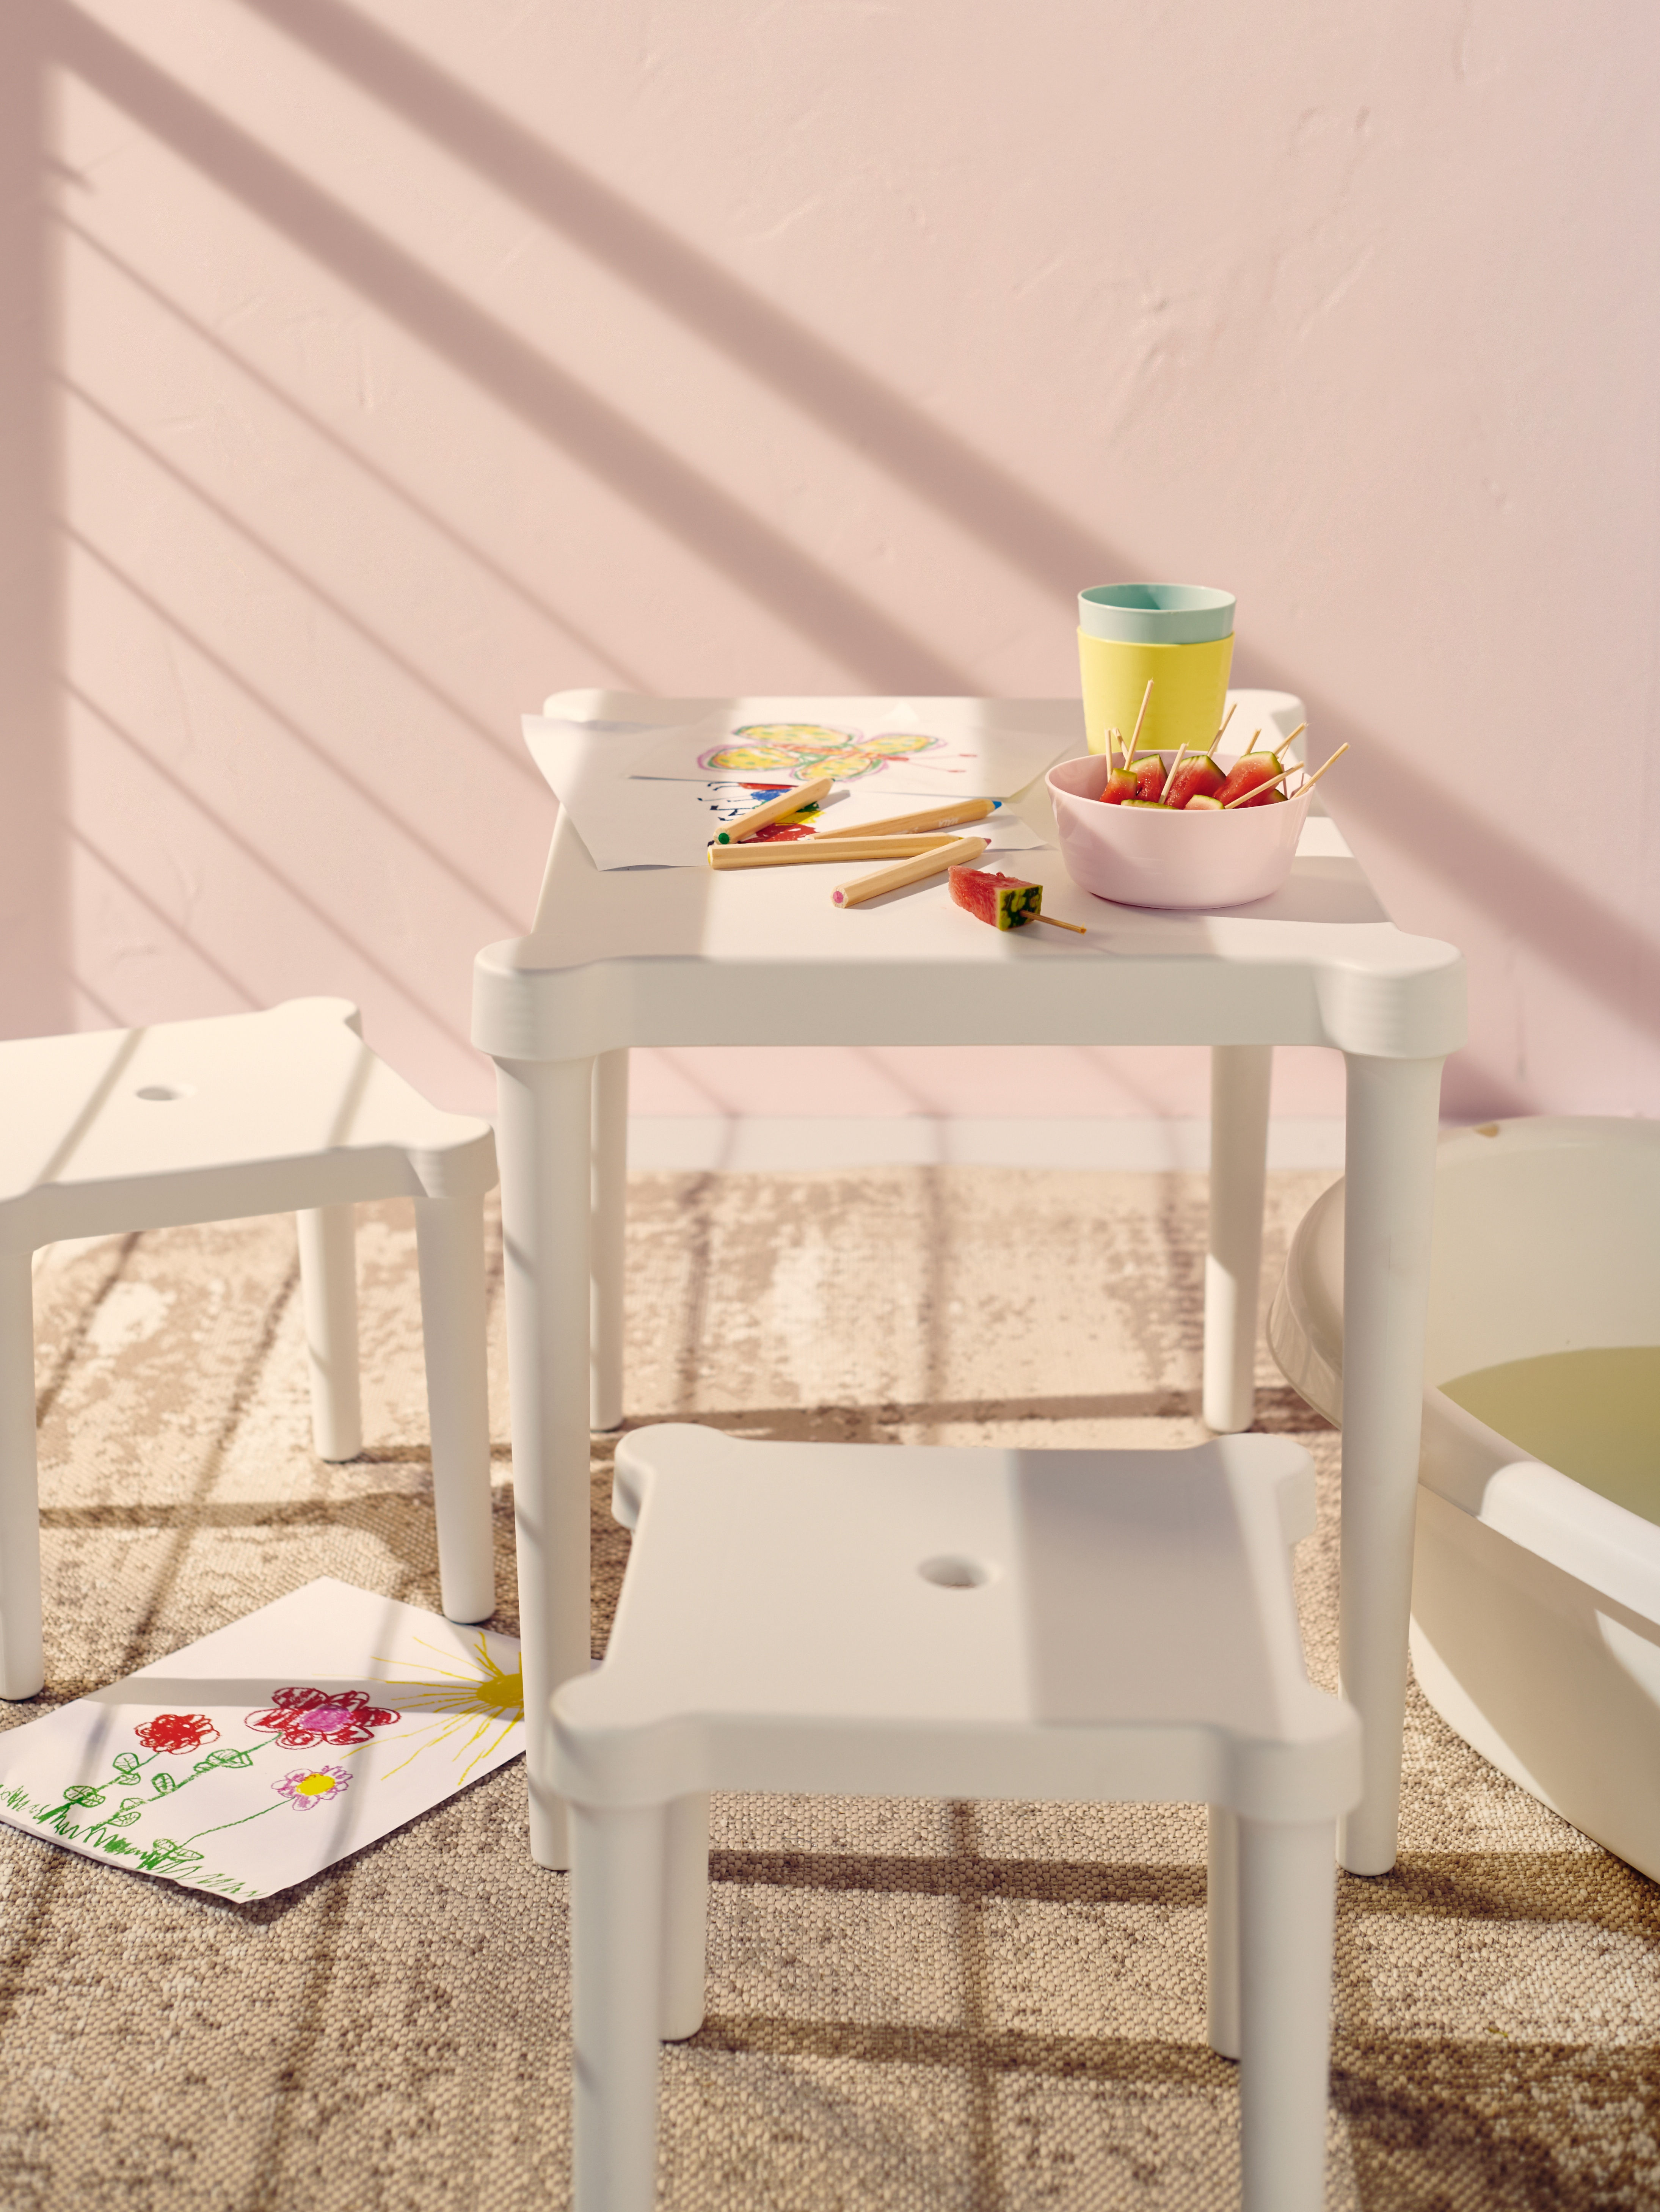 A white UTTER children's table with two stools creates an activity corner for the kids on a balcony with light pink walls.